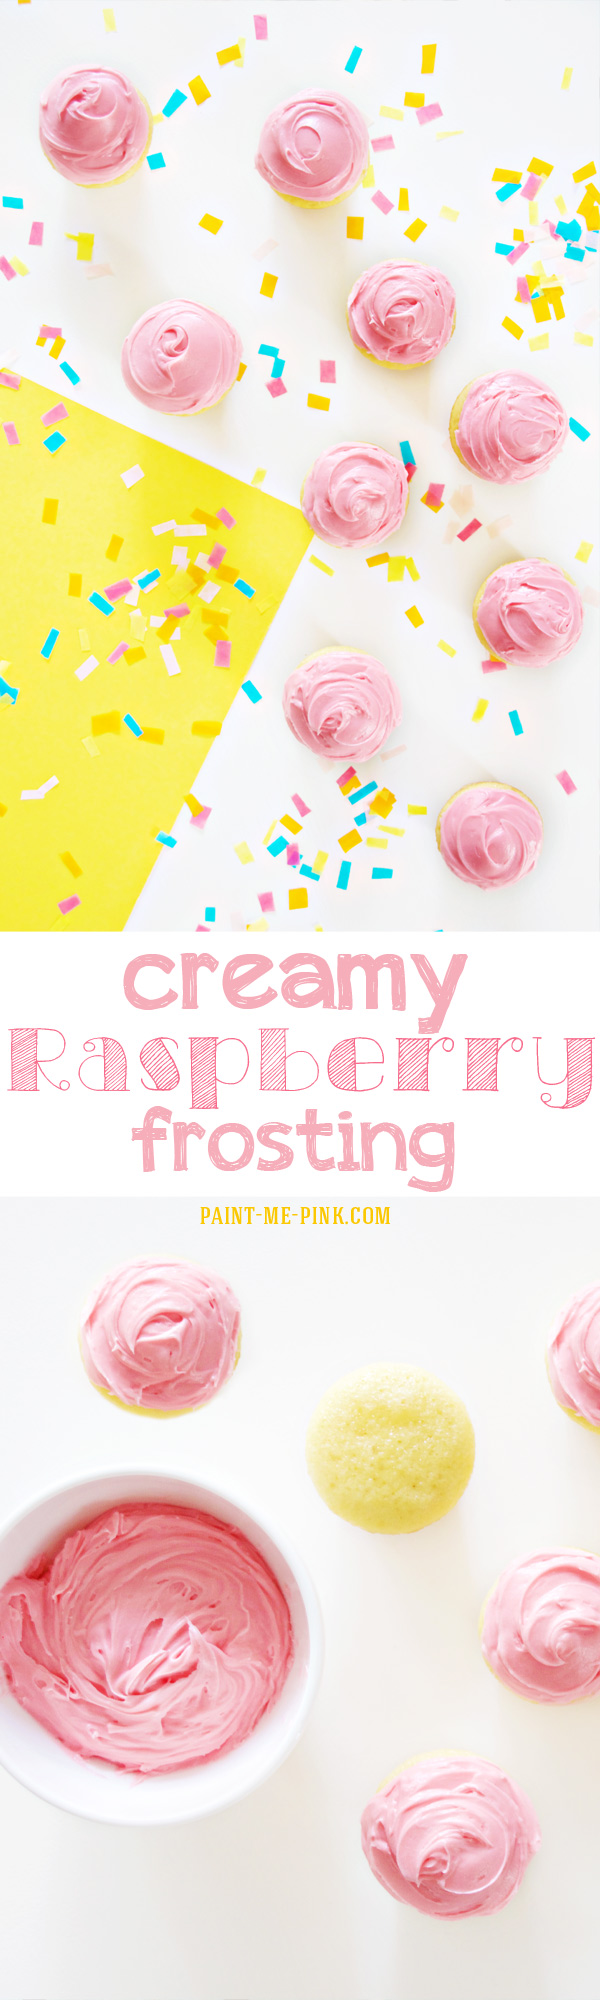 Creamy Raspberry Frosting! Paint Me Pink.com